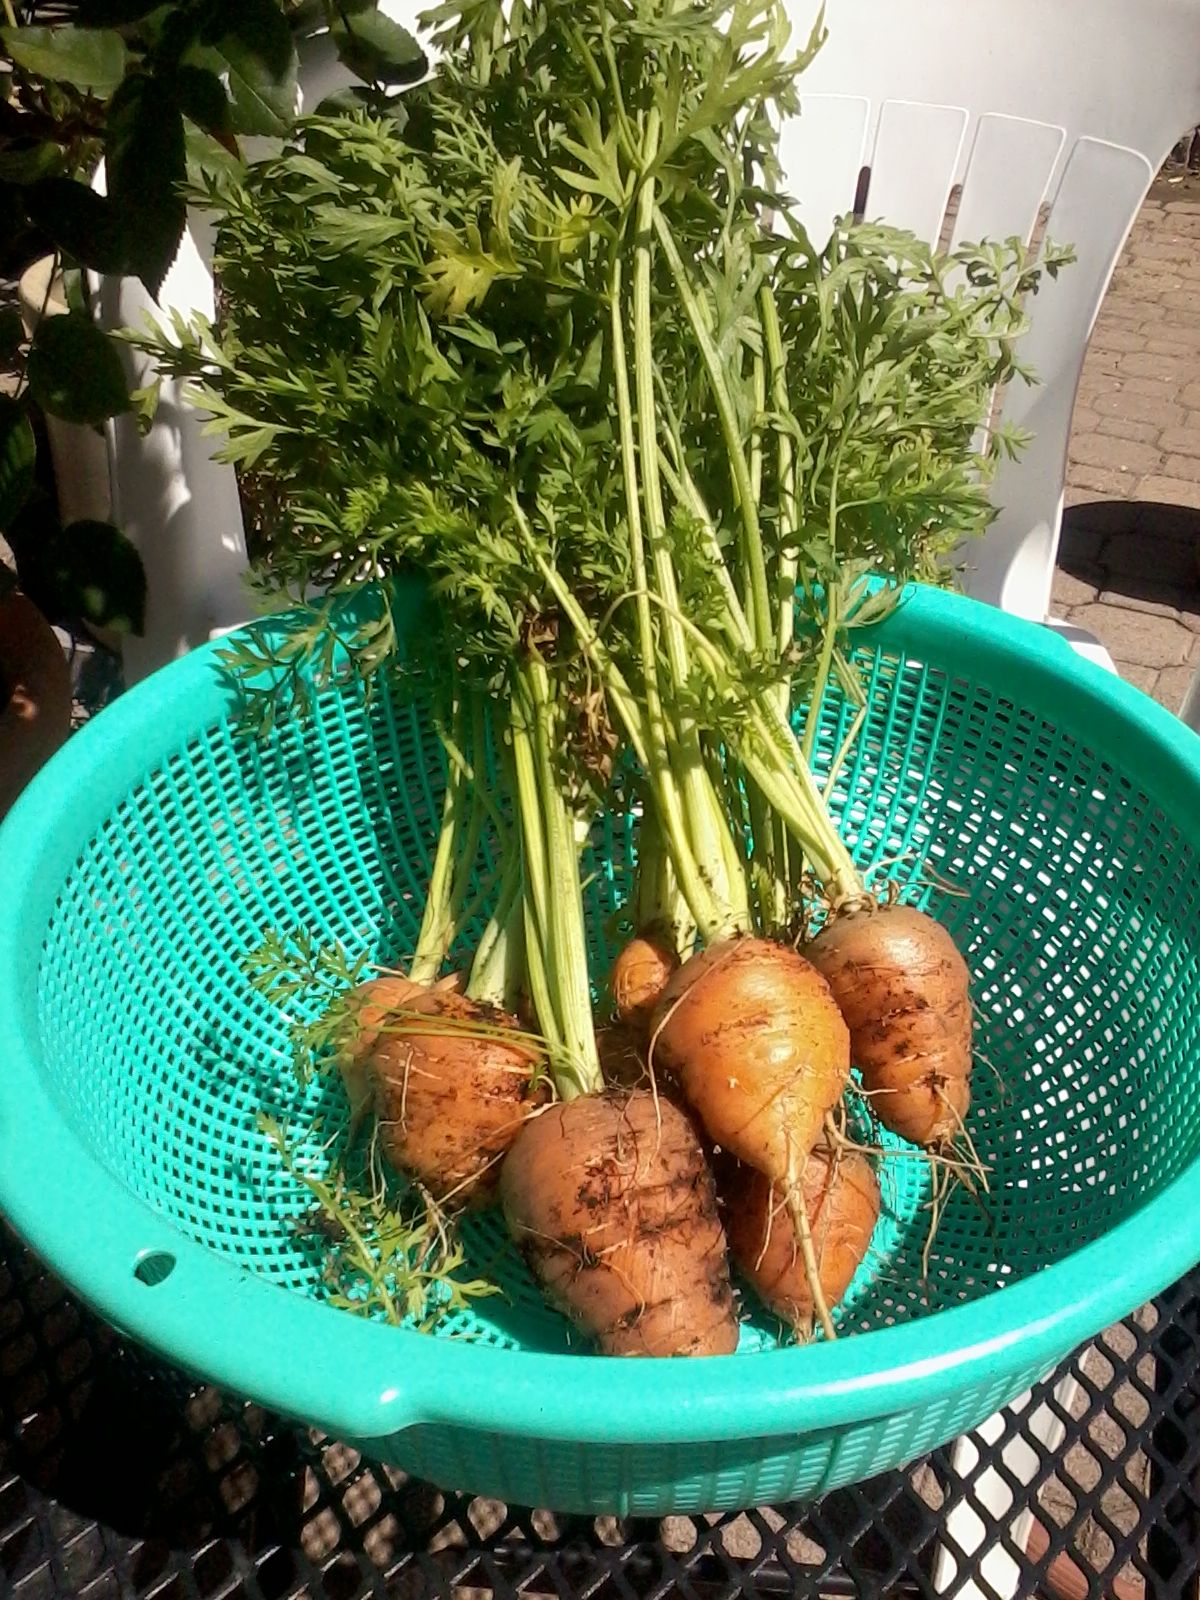 round baby romeo carrots from renee s garden seeds my